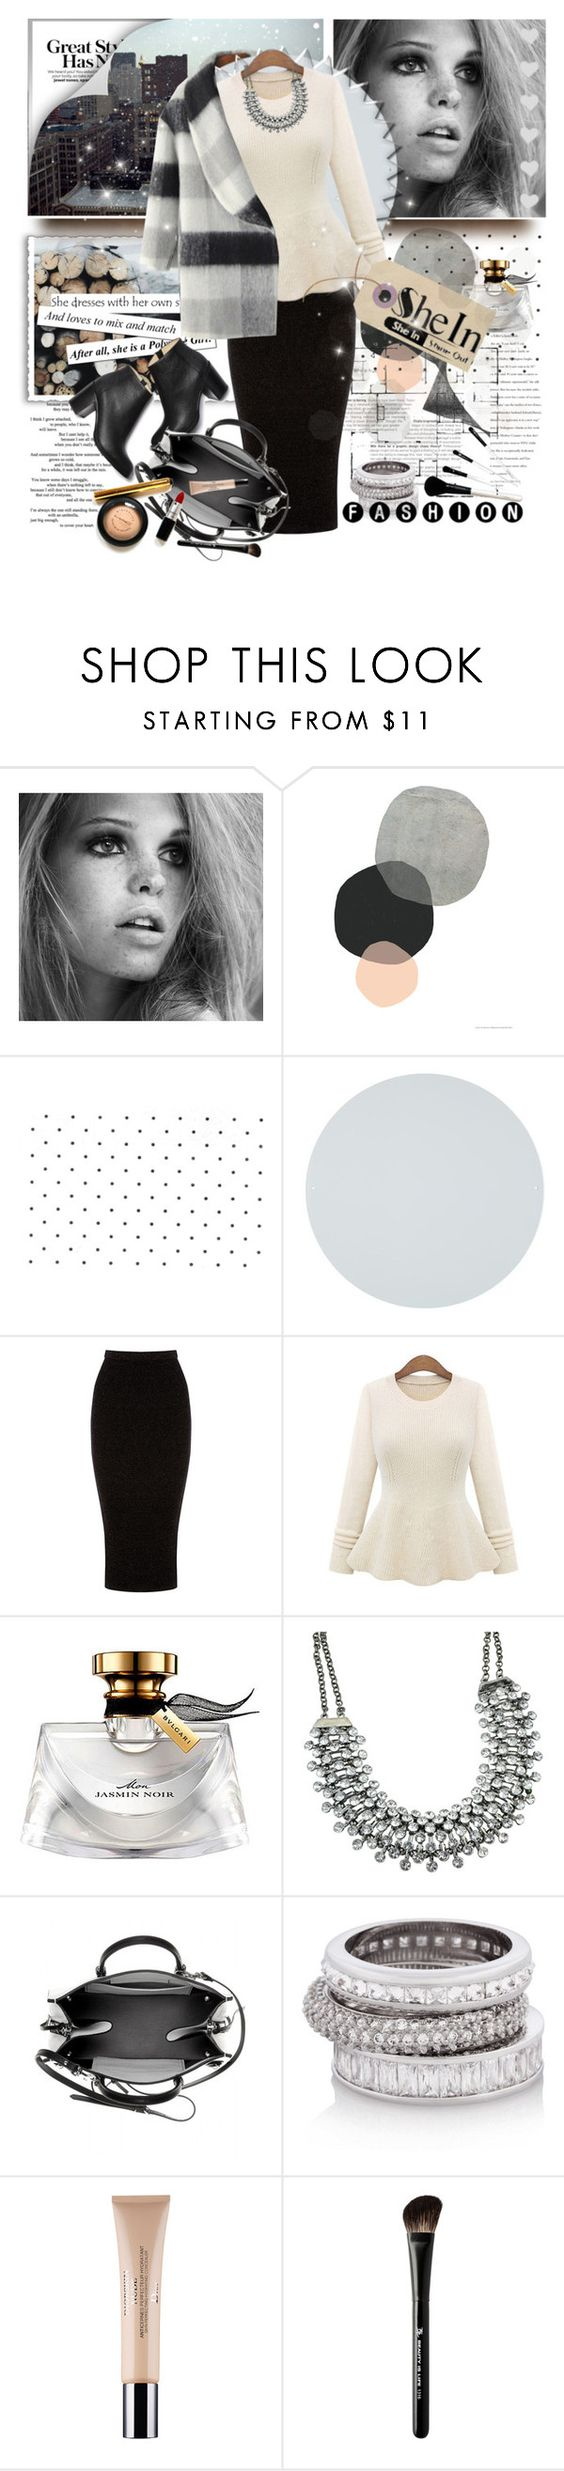 """Shein Beige Round Neck Knit Sweater - Contest with a Prize!"" by astromeria ❤ liked on Polyvore featuring Warehouse, Bulgari, Paul Andrew, Balenciaga, Henri Bendel, Christian Dior and Beauty Is Life"